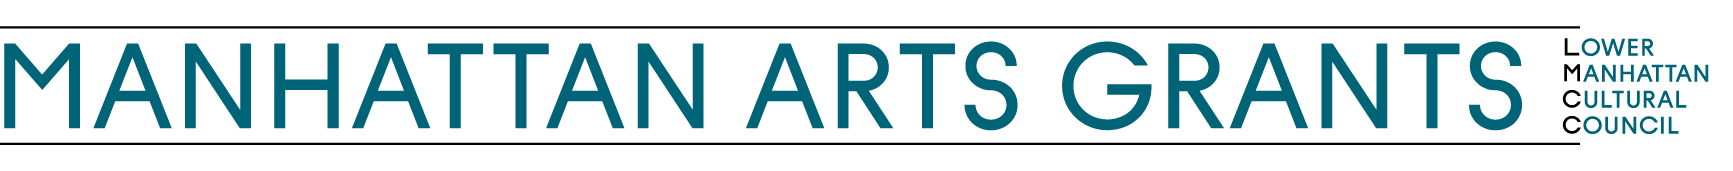 Manhattan Arts Grants logo